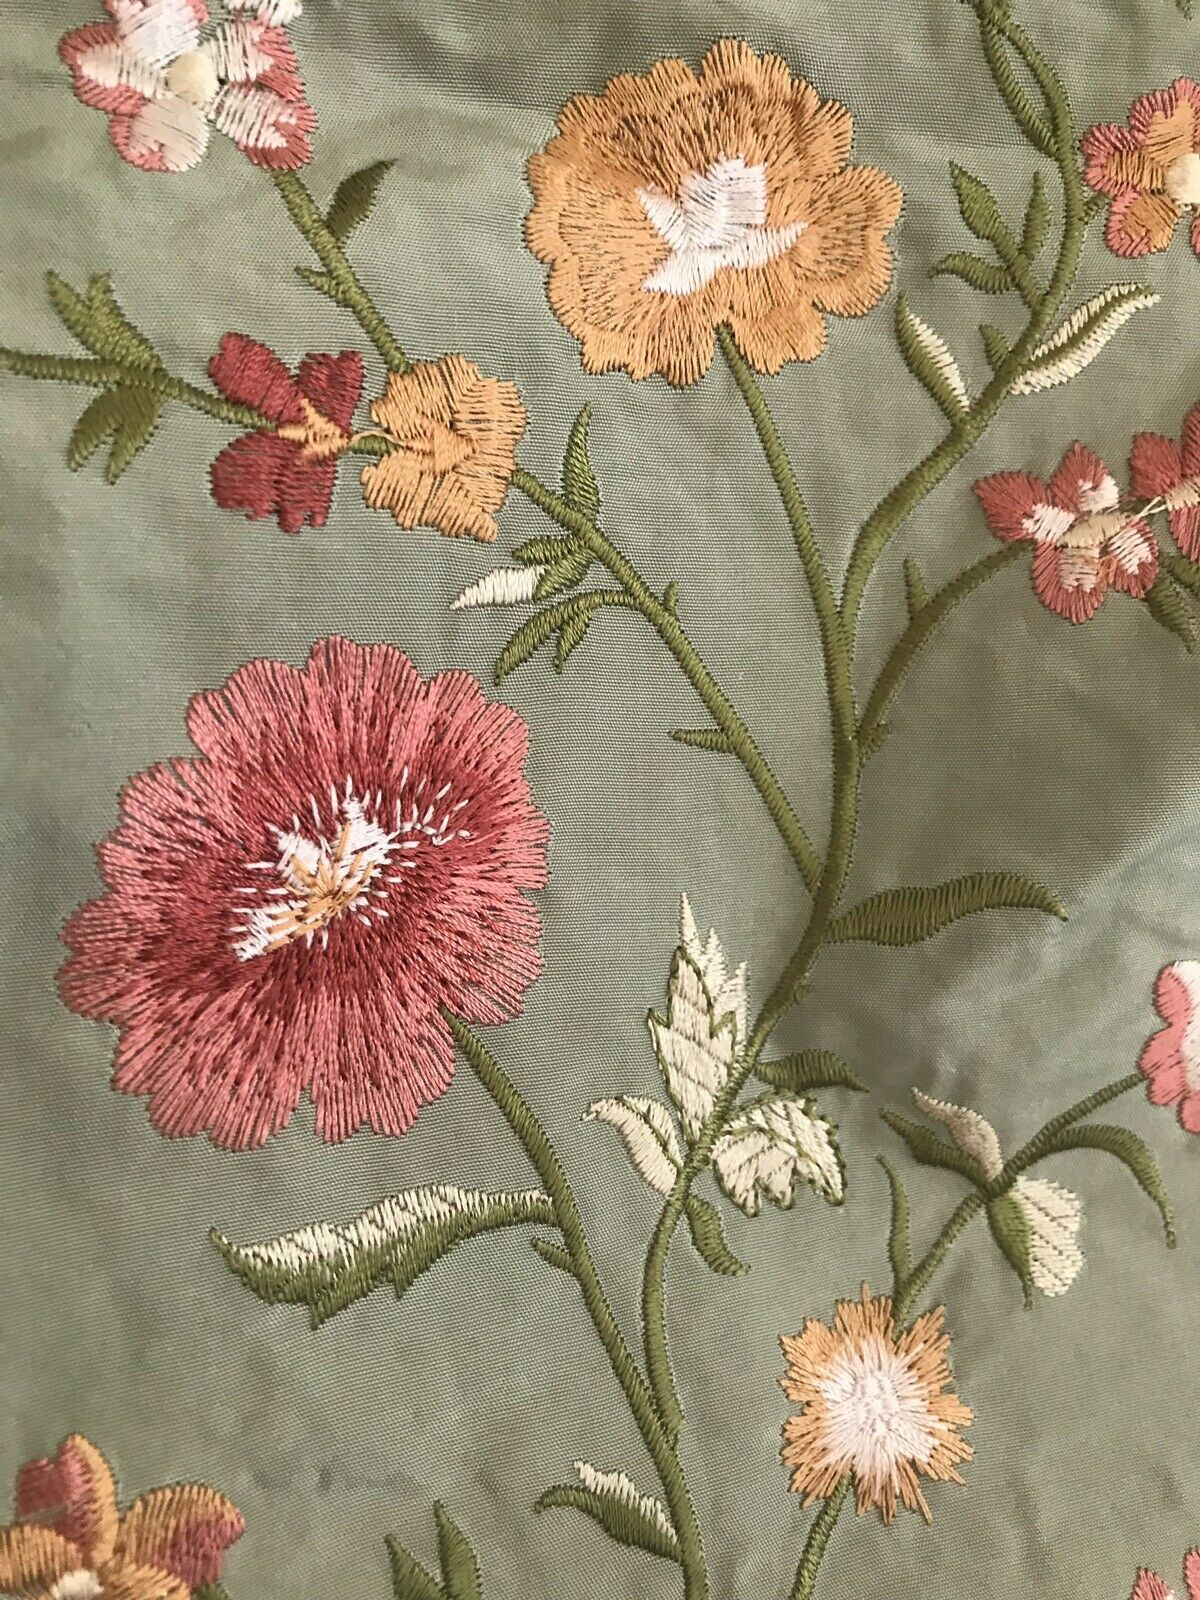 NEW SALE! Designer 100% Silk Taffeta Dupioni Embroidery Fabric- Floral Mineral Green BTY